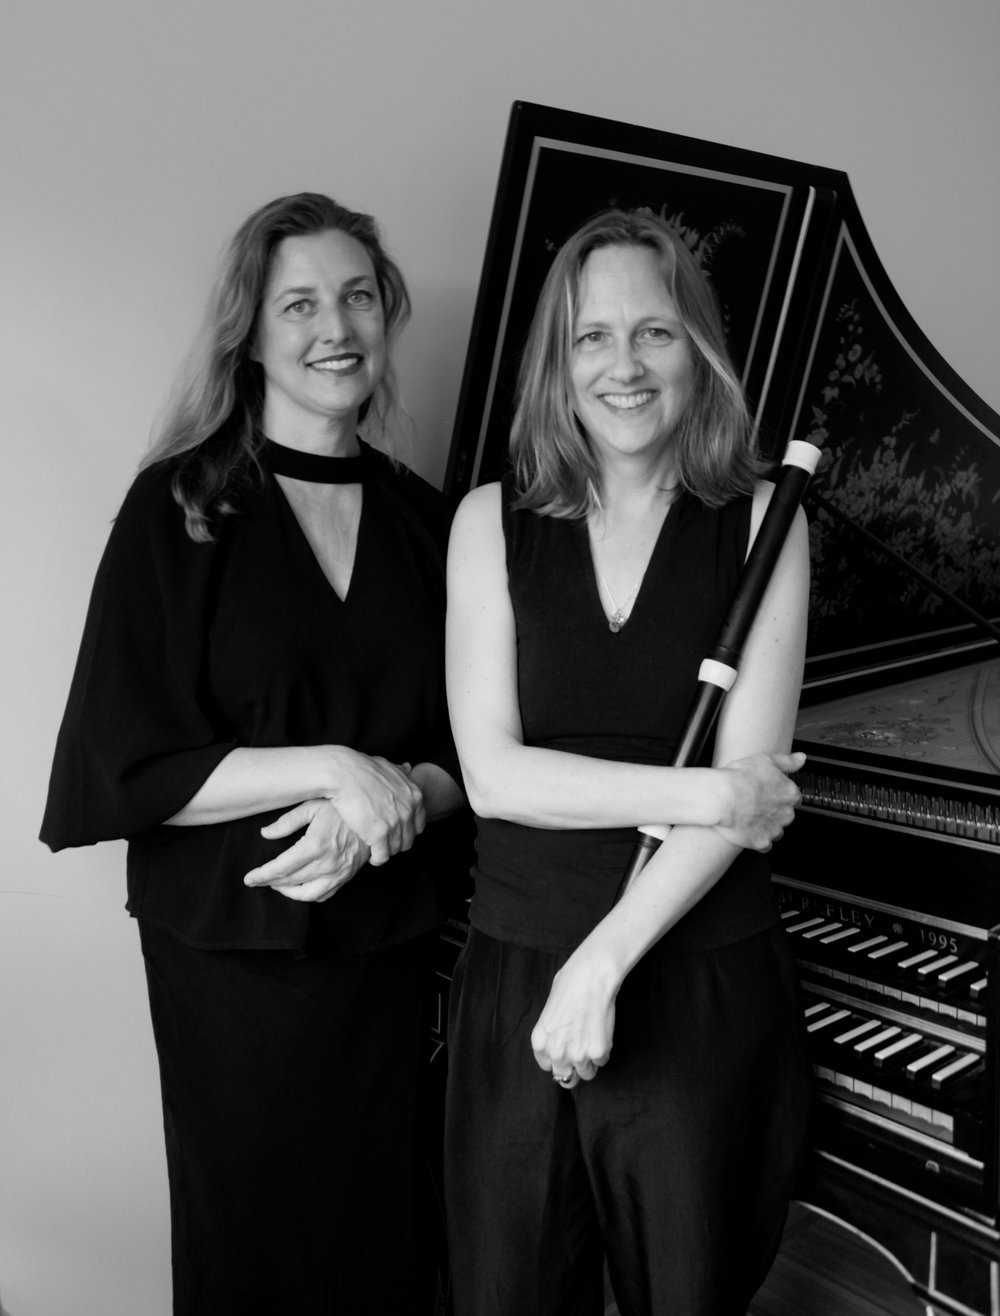 Nash Baroque_Katherine Heater and Vicki Melin.jpg